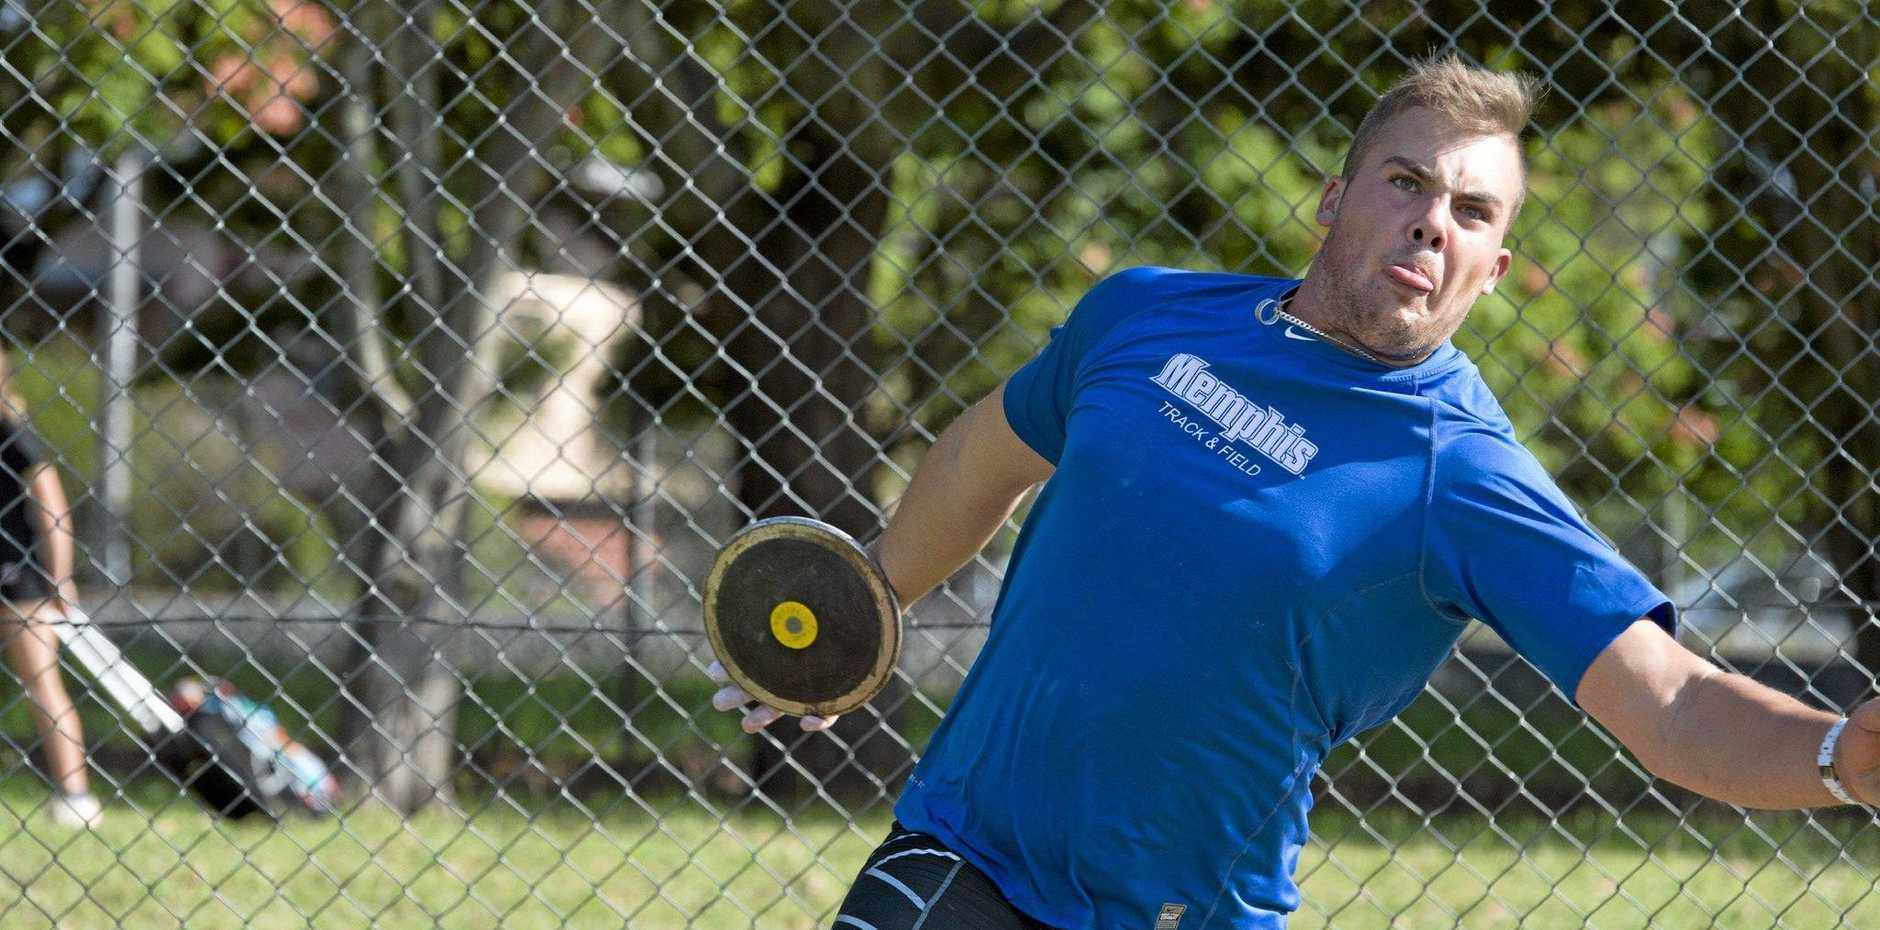 National throw champion Matthew Denny at training as a forerunner to an Olympic qualifying throw at the weekend in America.